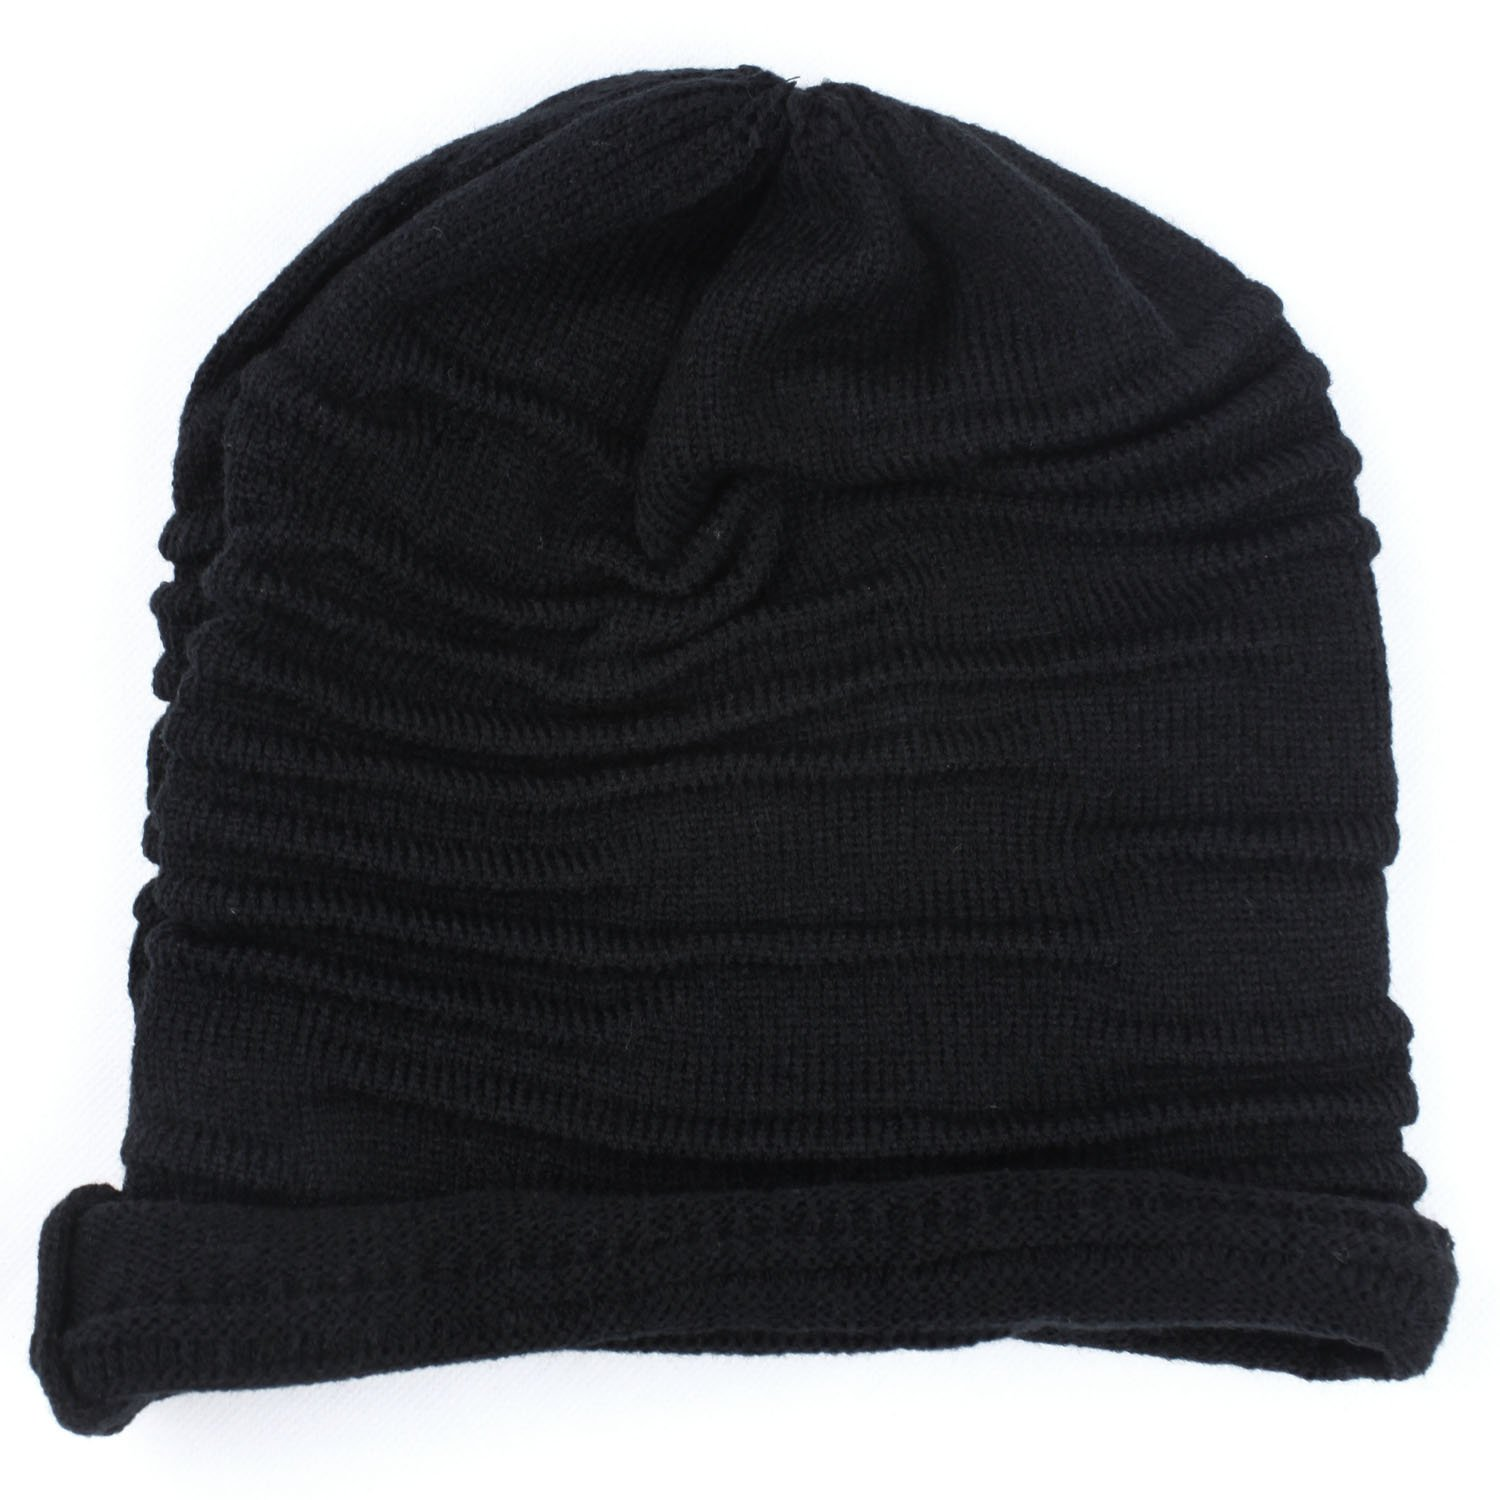 5x Winter Plicate Baggy Beanie Knit Crochet Hat Oversized Black hot sale unisex winter plicate baggy beanie knit crochet ski hat cap